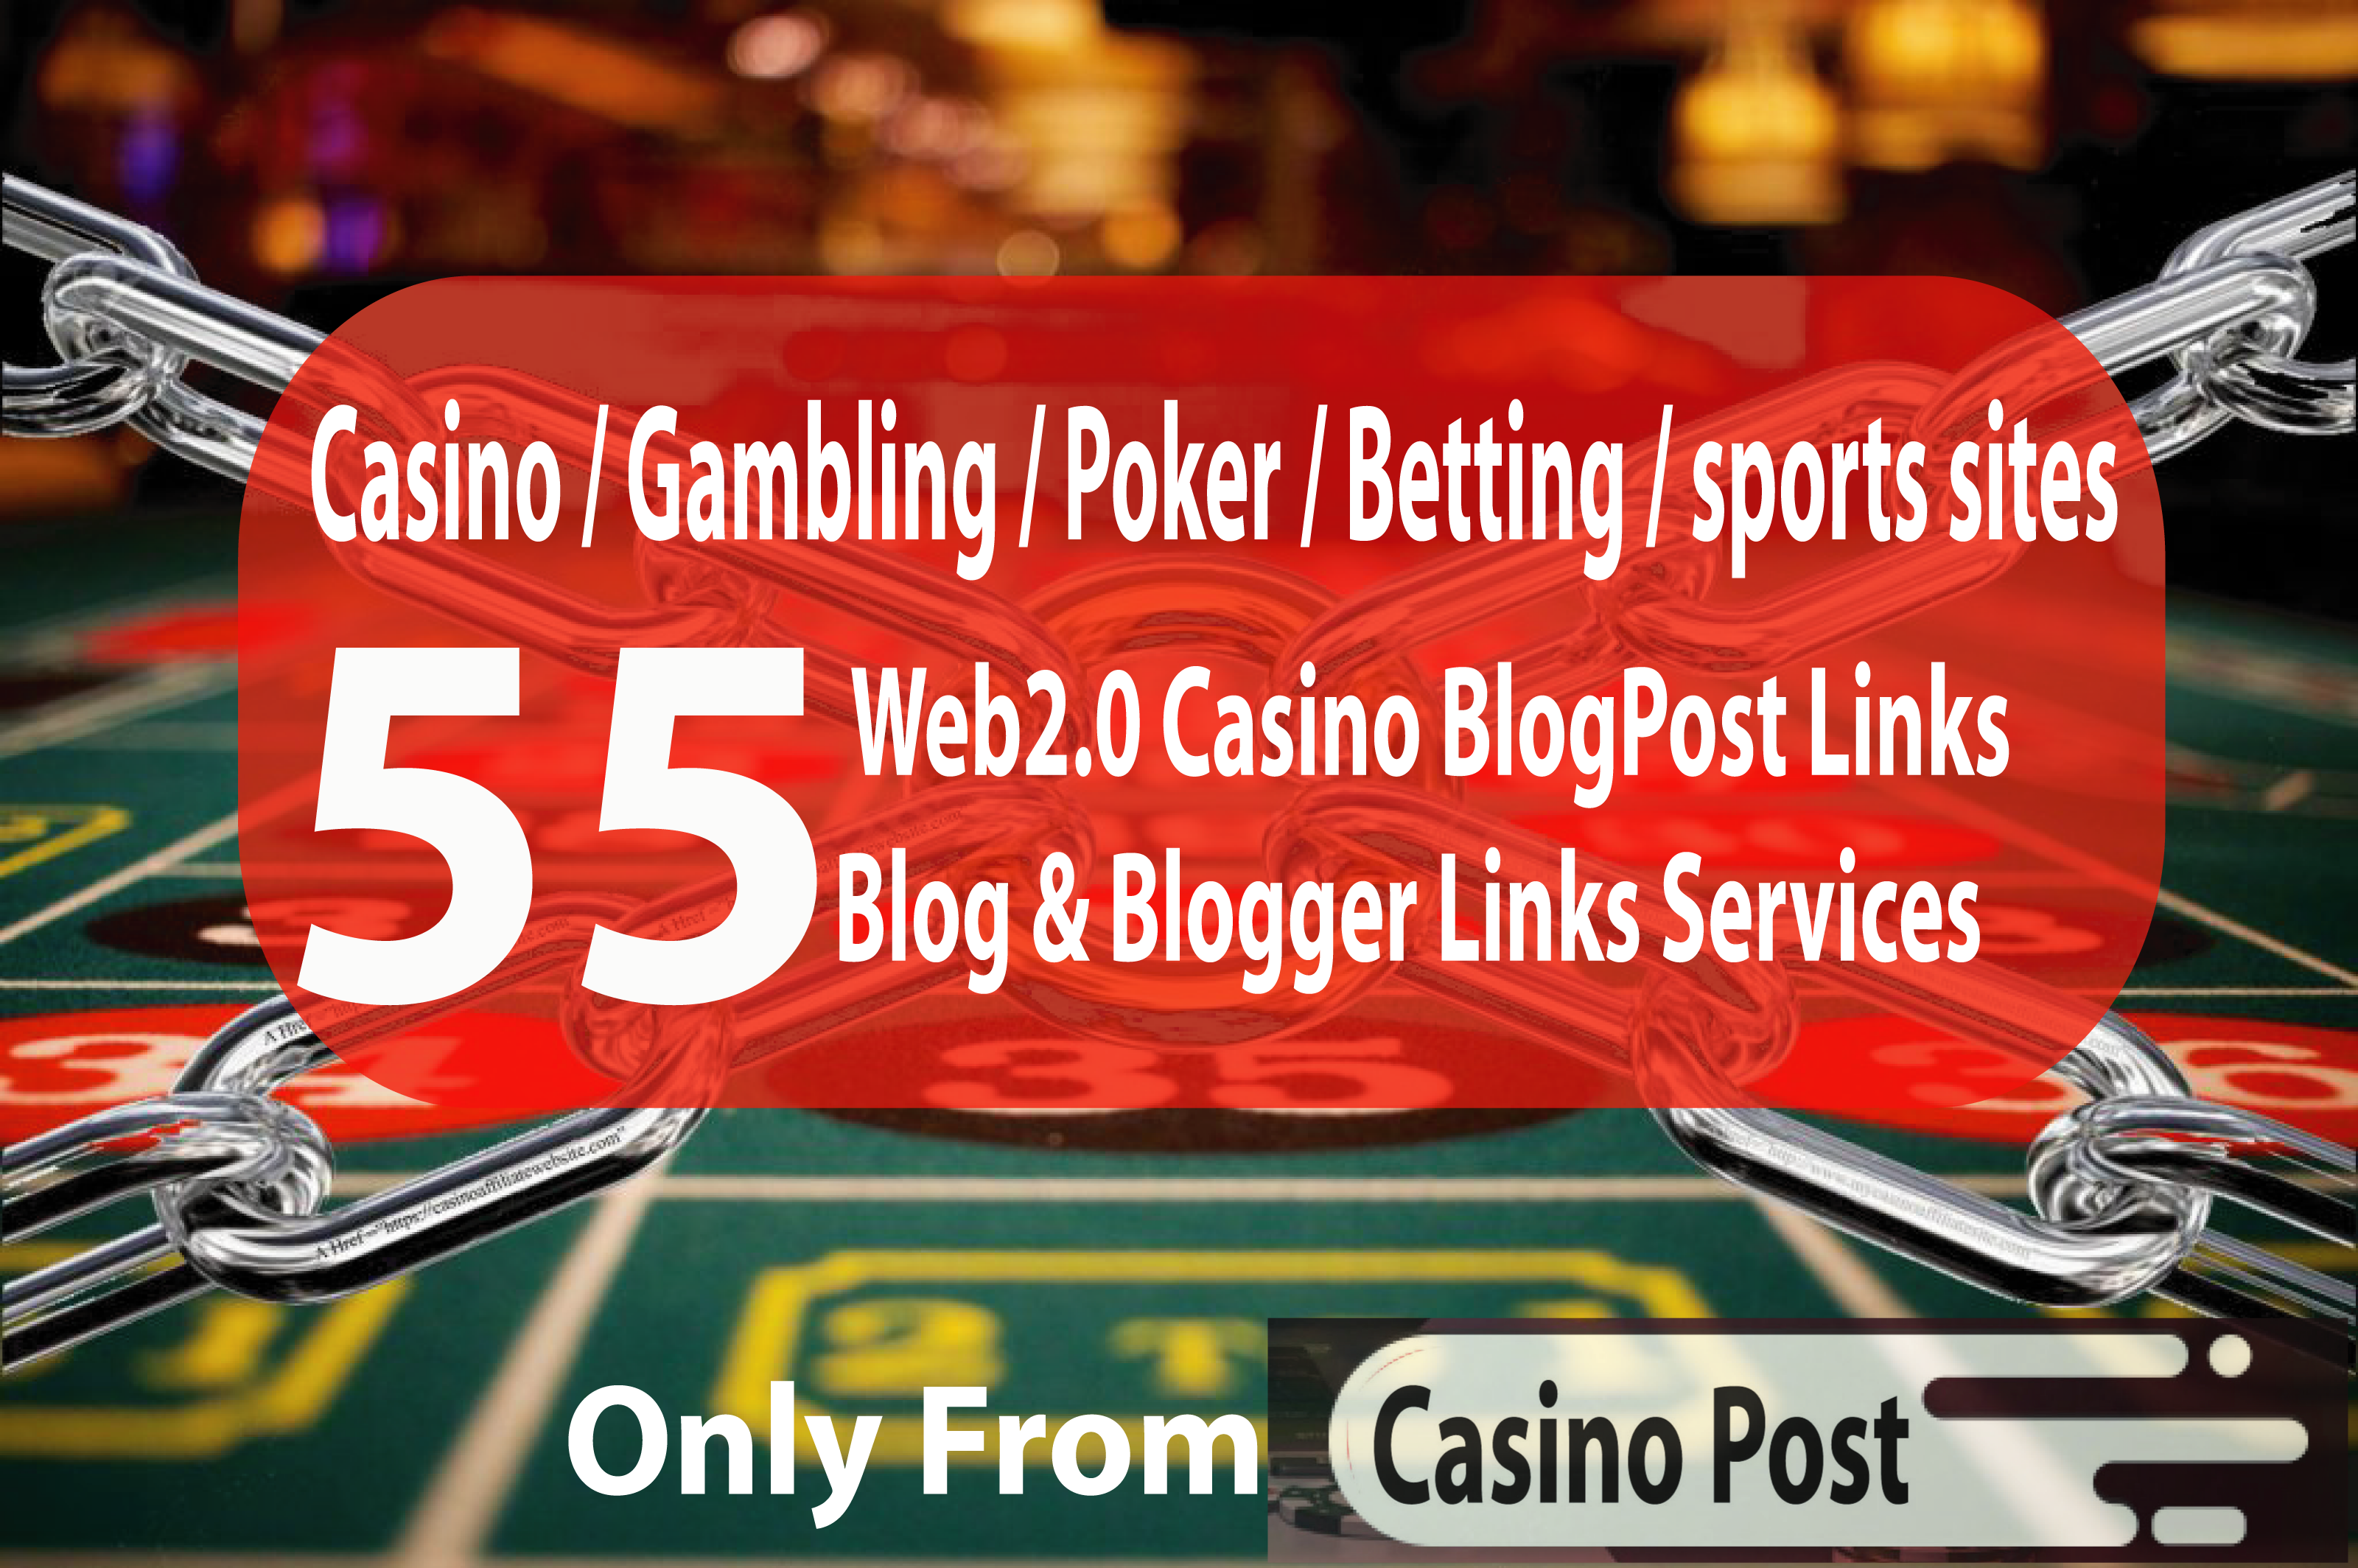 55 Advance Casino Blogpost- Casino / Gambling / Poker / Betting / sports sites From Web2.0 site